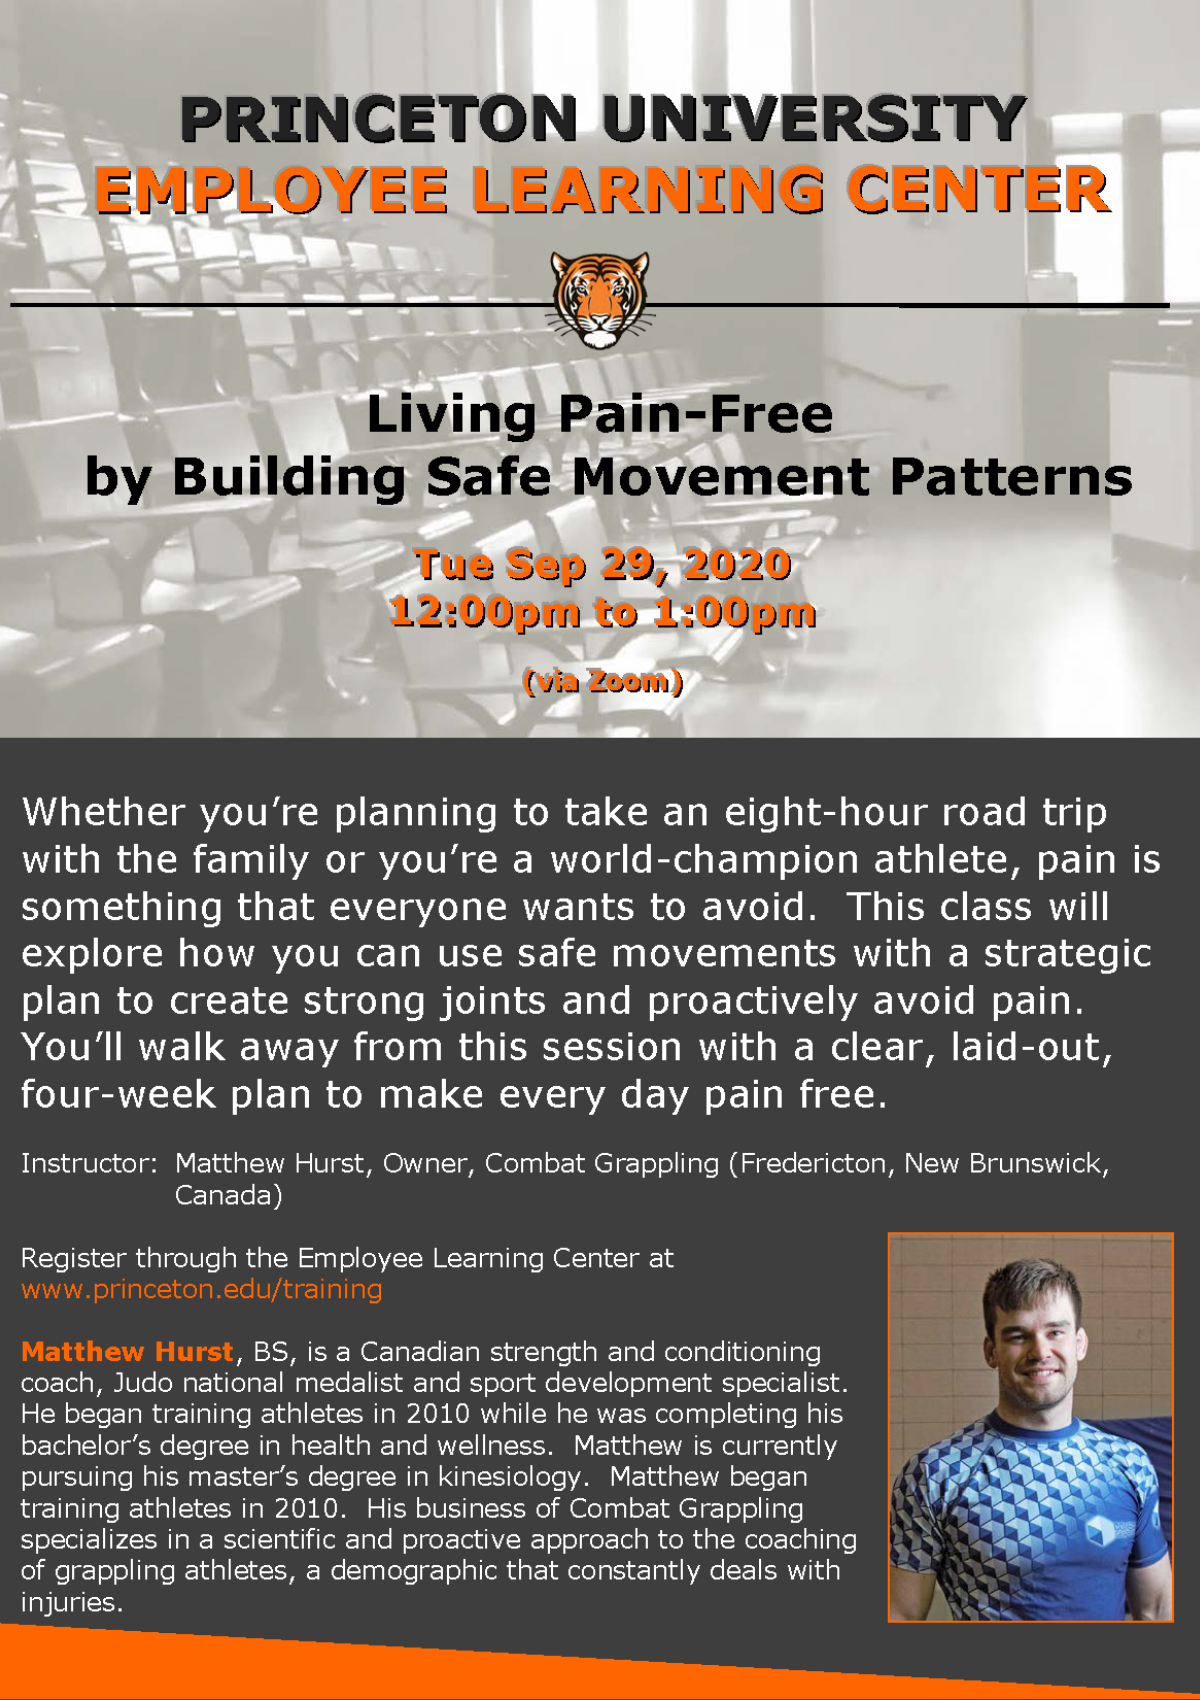 Employee Learning Center: Living Pain-Free by Building Safe Movement Patterns. Tuesday Sept. 29, 2020 12pm-1pm via Zoom